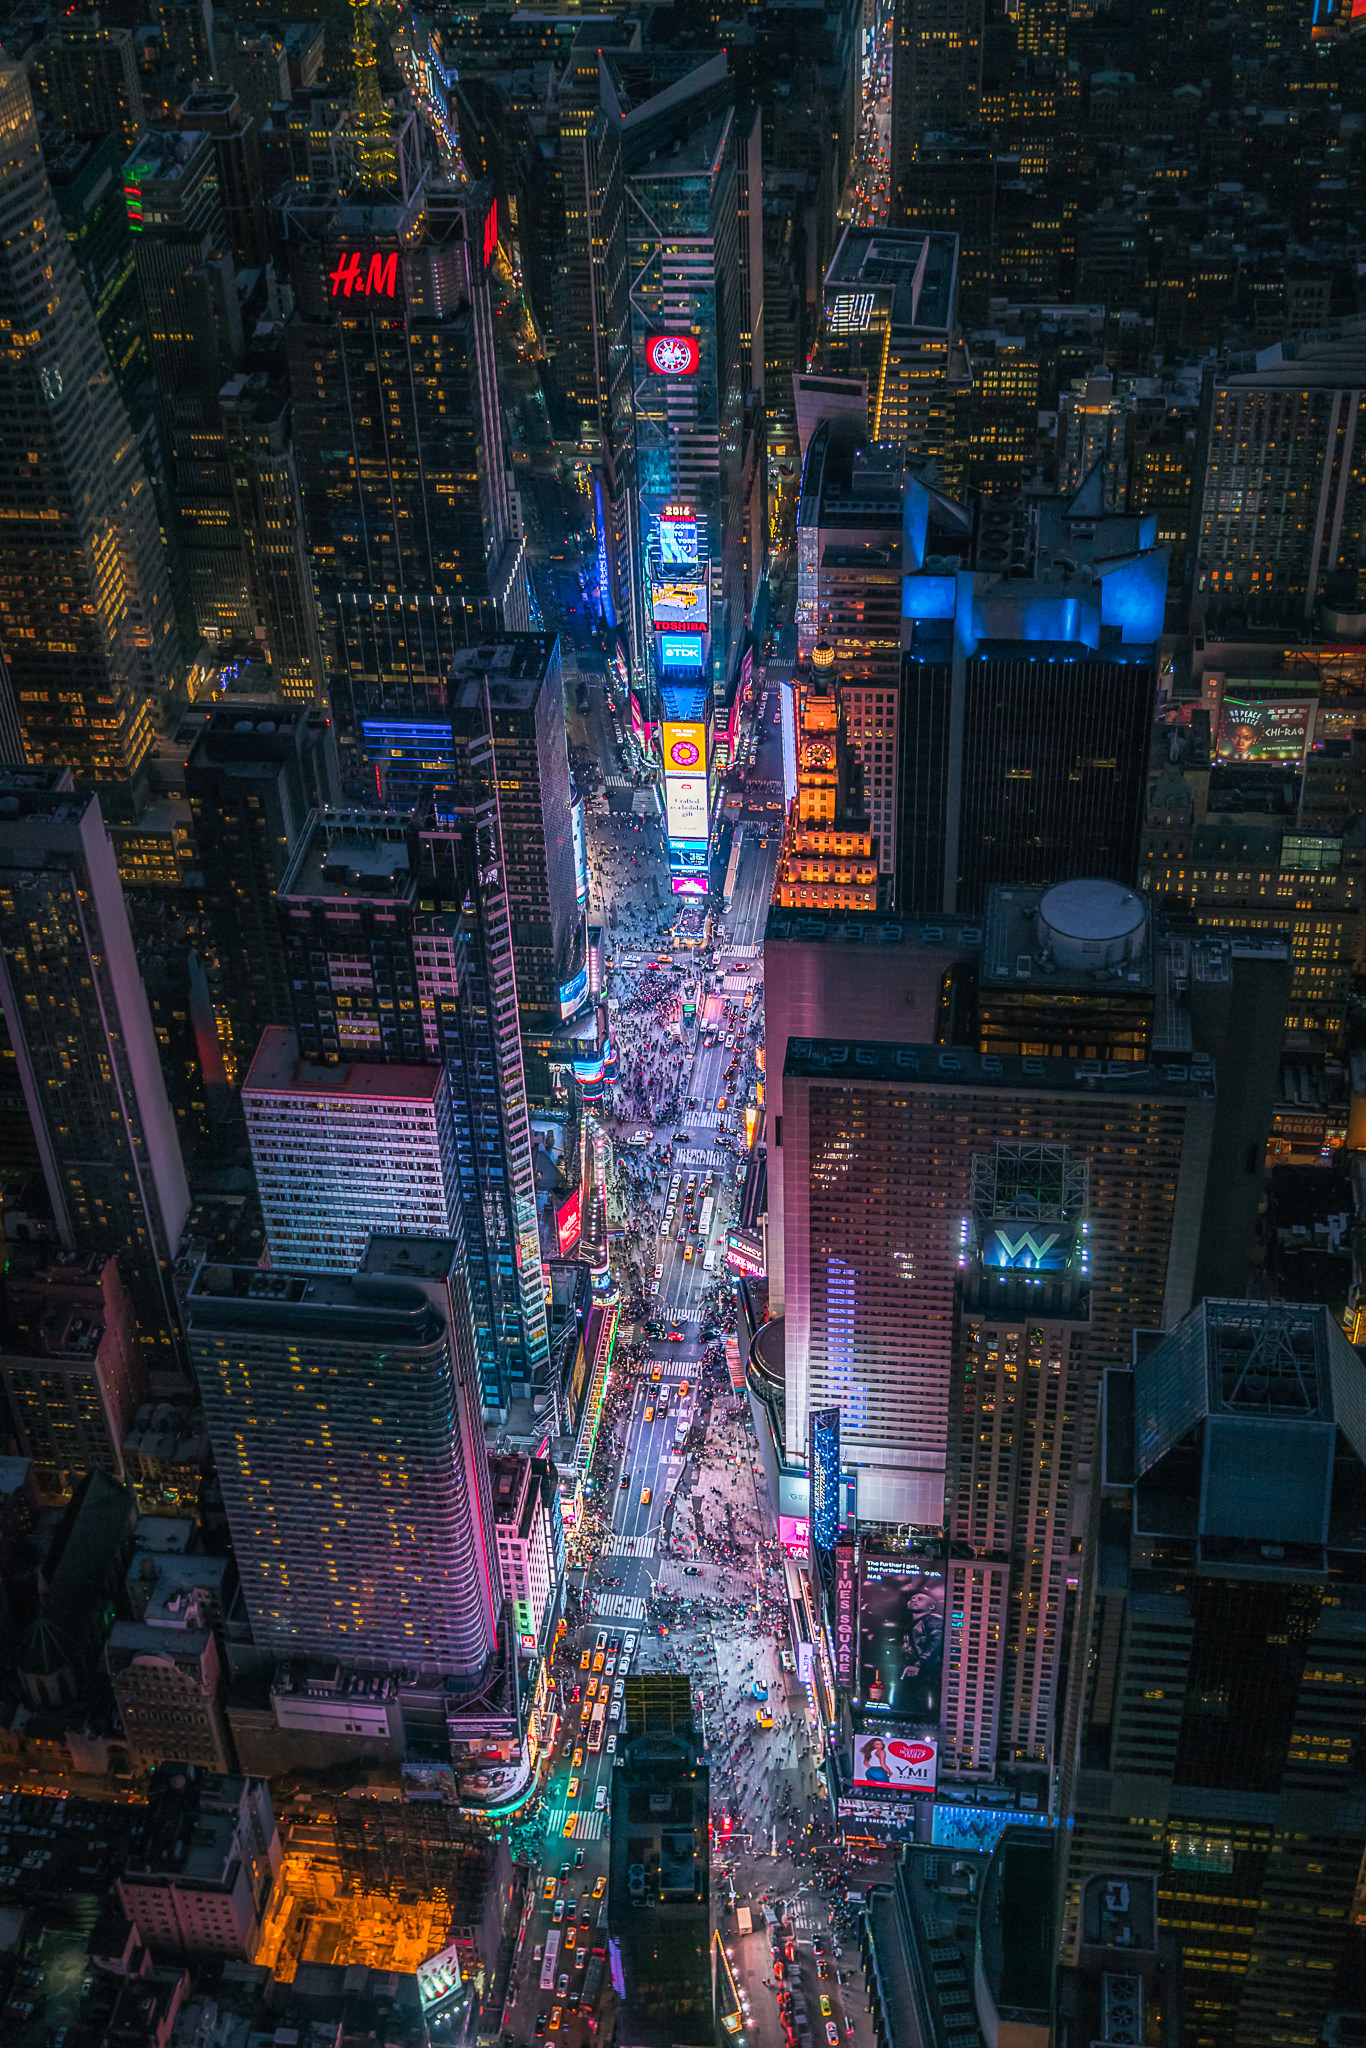 An aerial shot of Times Square